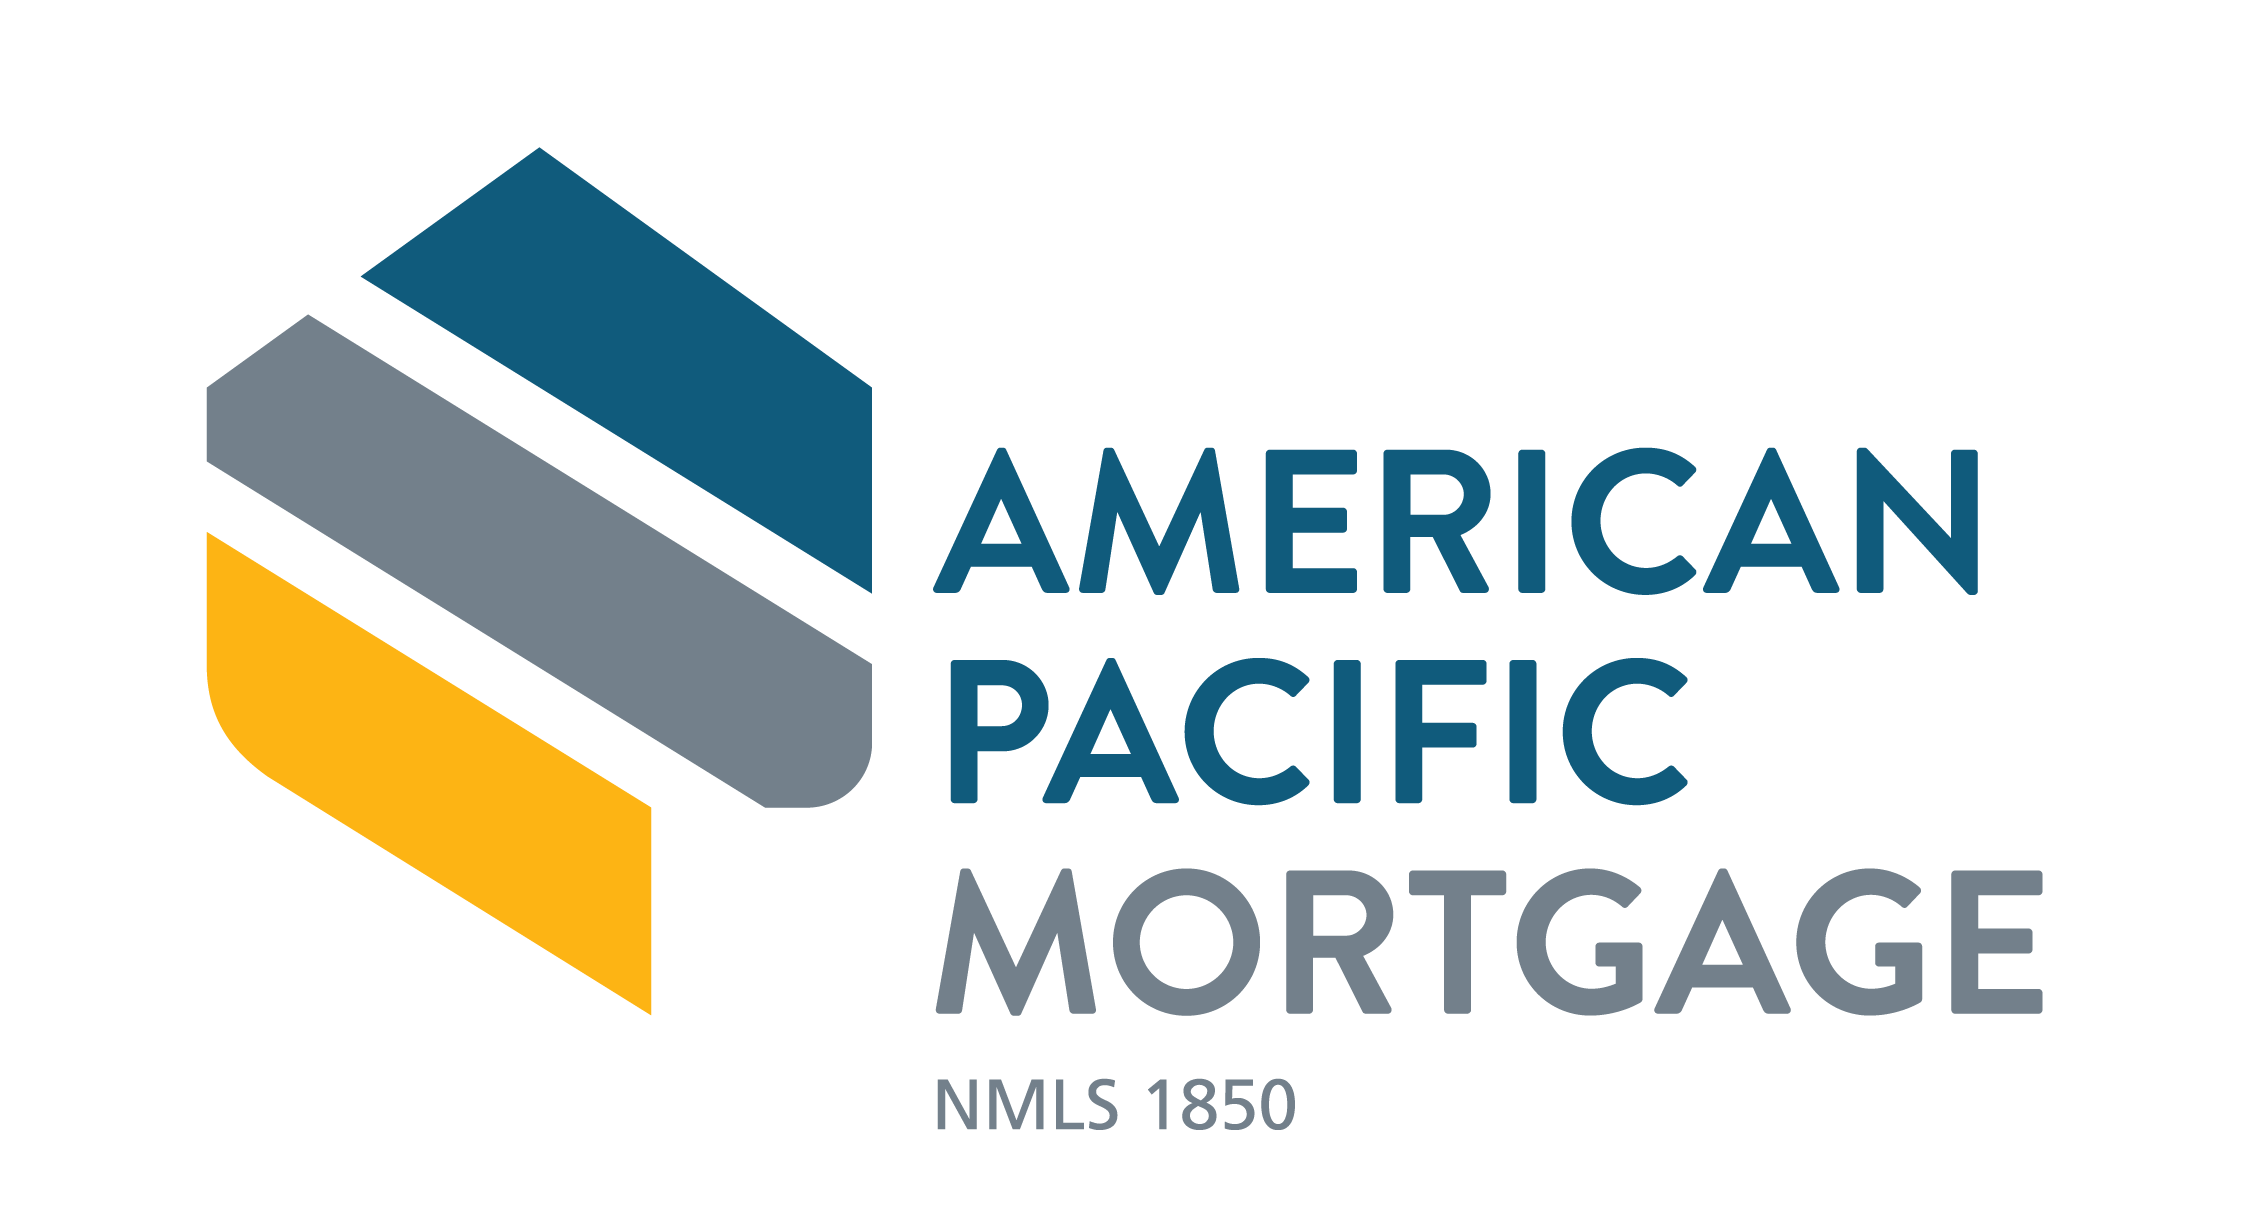 Bruce Fate (NMLS# 19070) reviews | Mortgage Lenders at 614 SE 4th Street - Lee's Summit MO